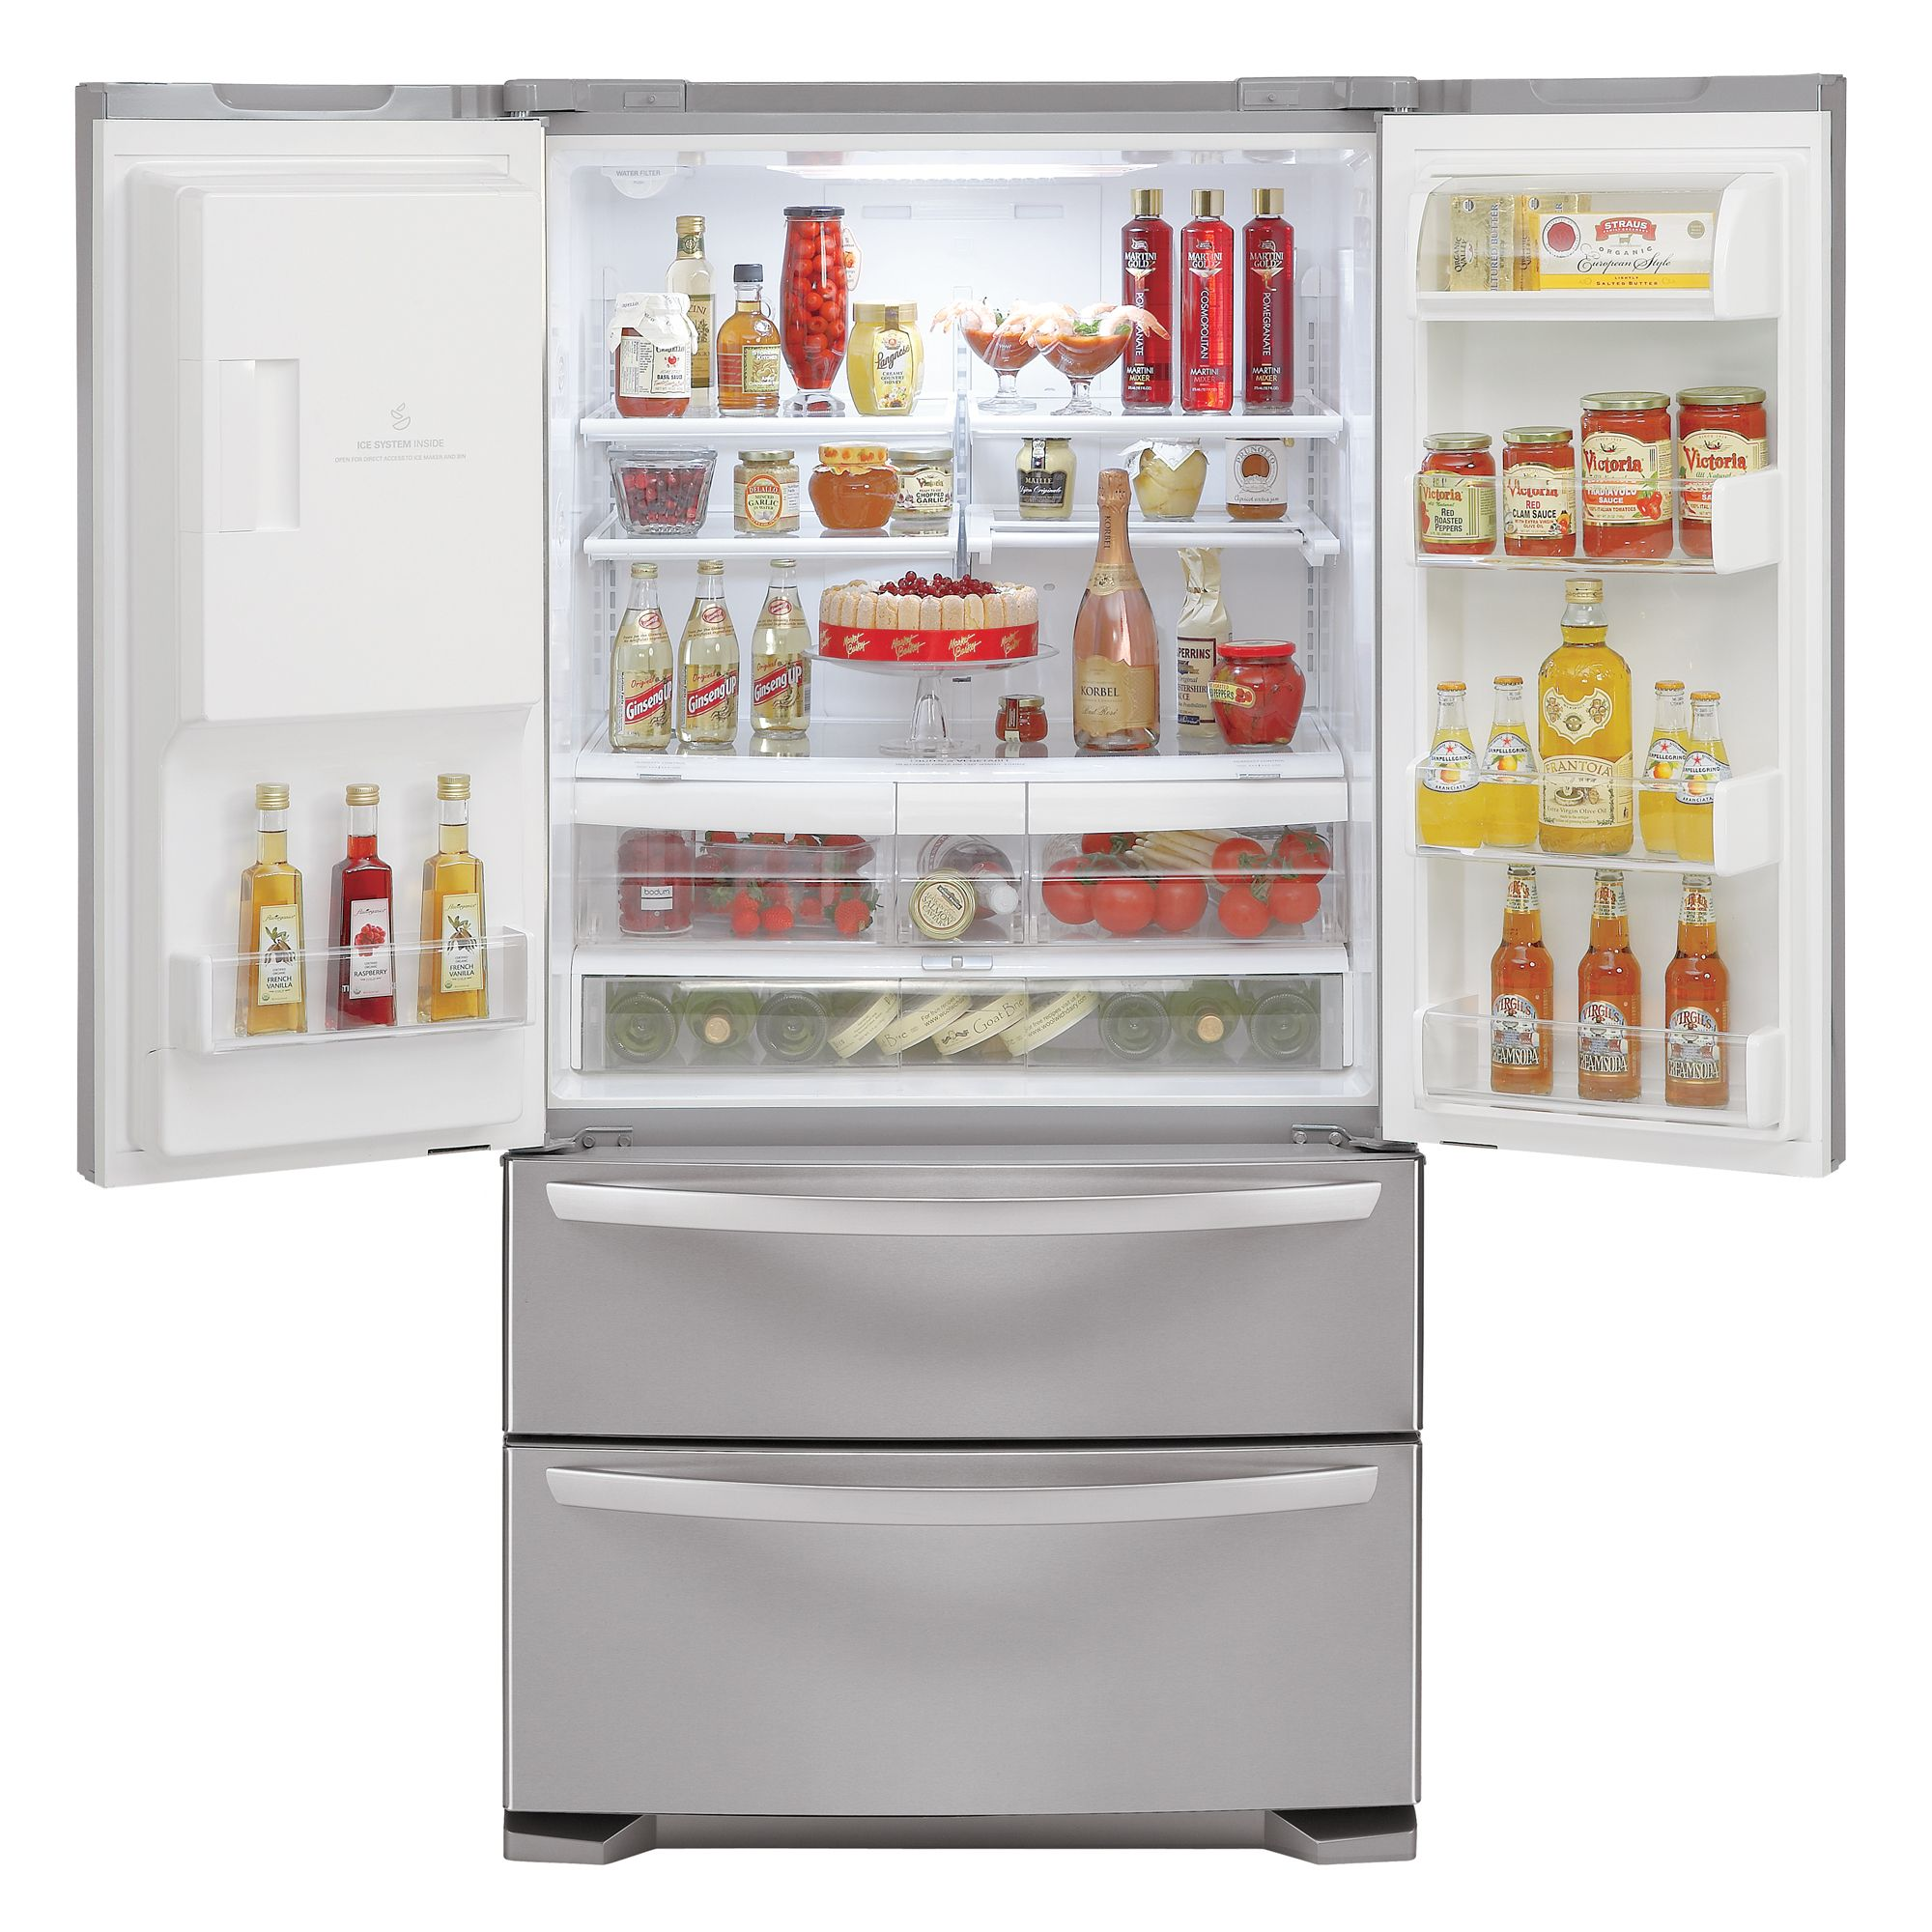 LG 24.7 cu. ft. French-Door Bottom-Freezer Refrigerator (LMX25984ST)